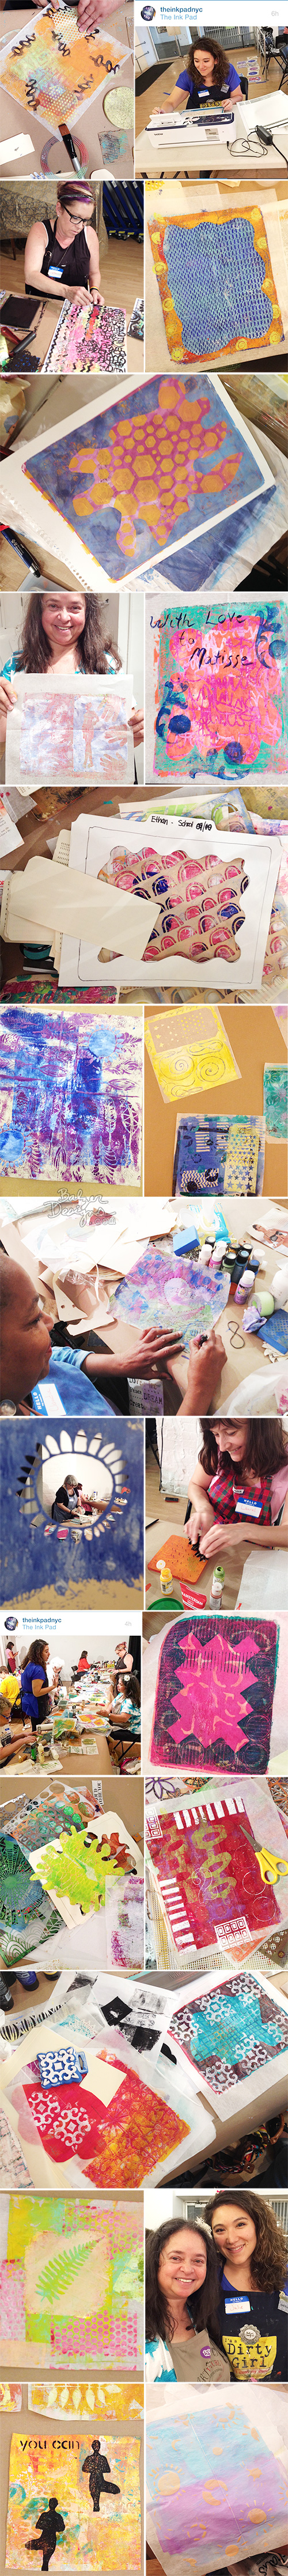 from the Balzer Designs Blog: Gelli + Deli at The Ink Pad